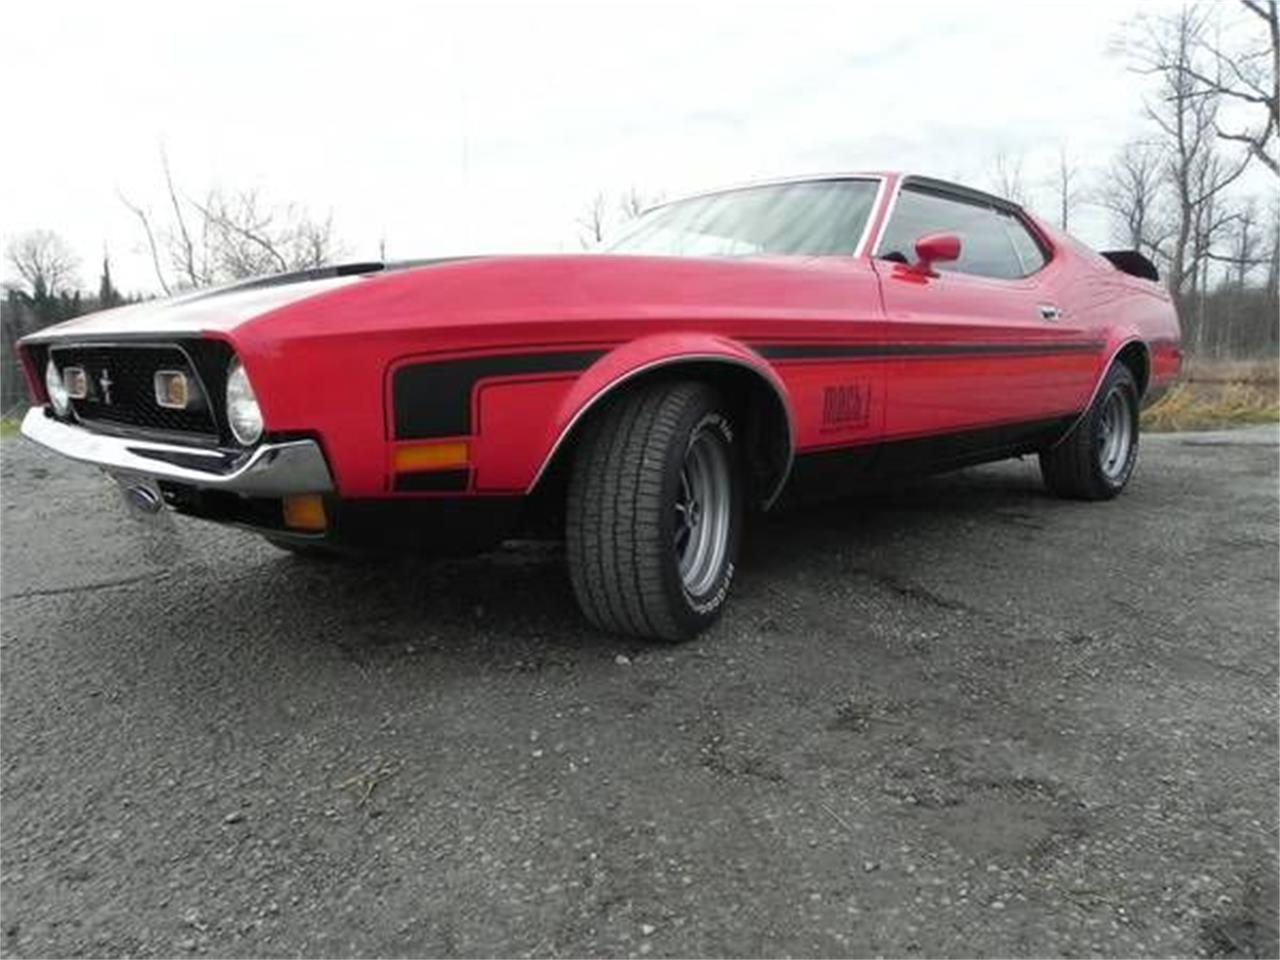 Large picture of 72 mustang o3f6